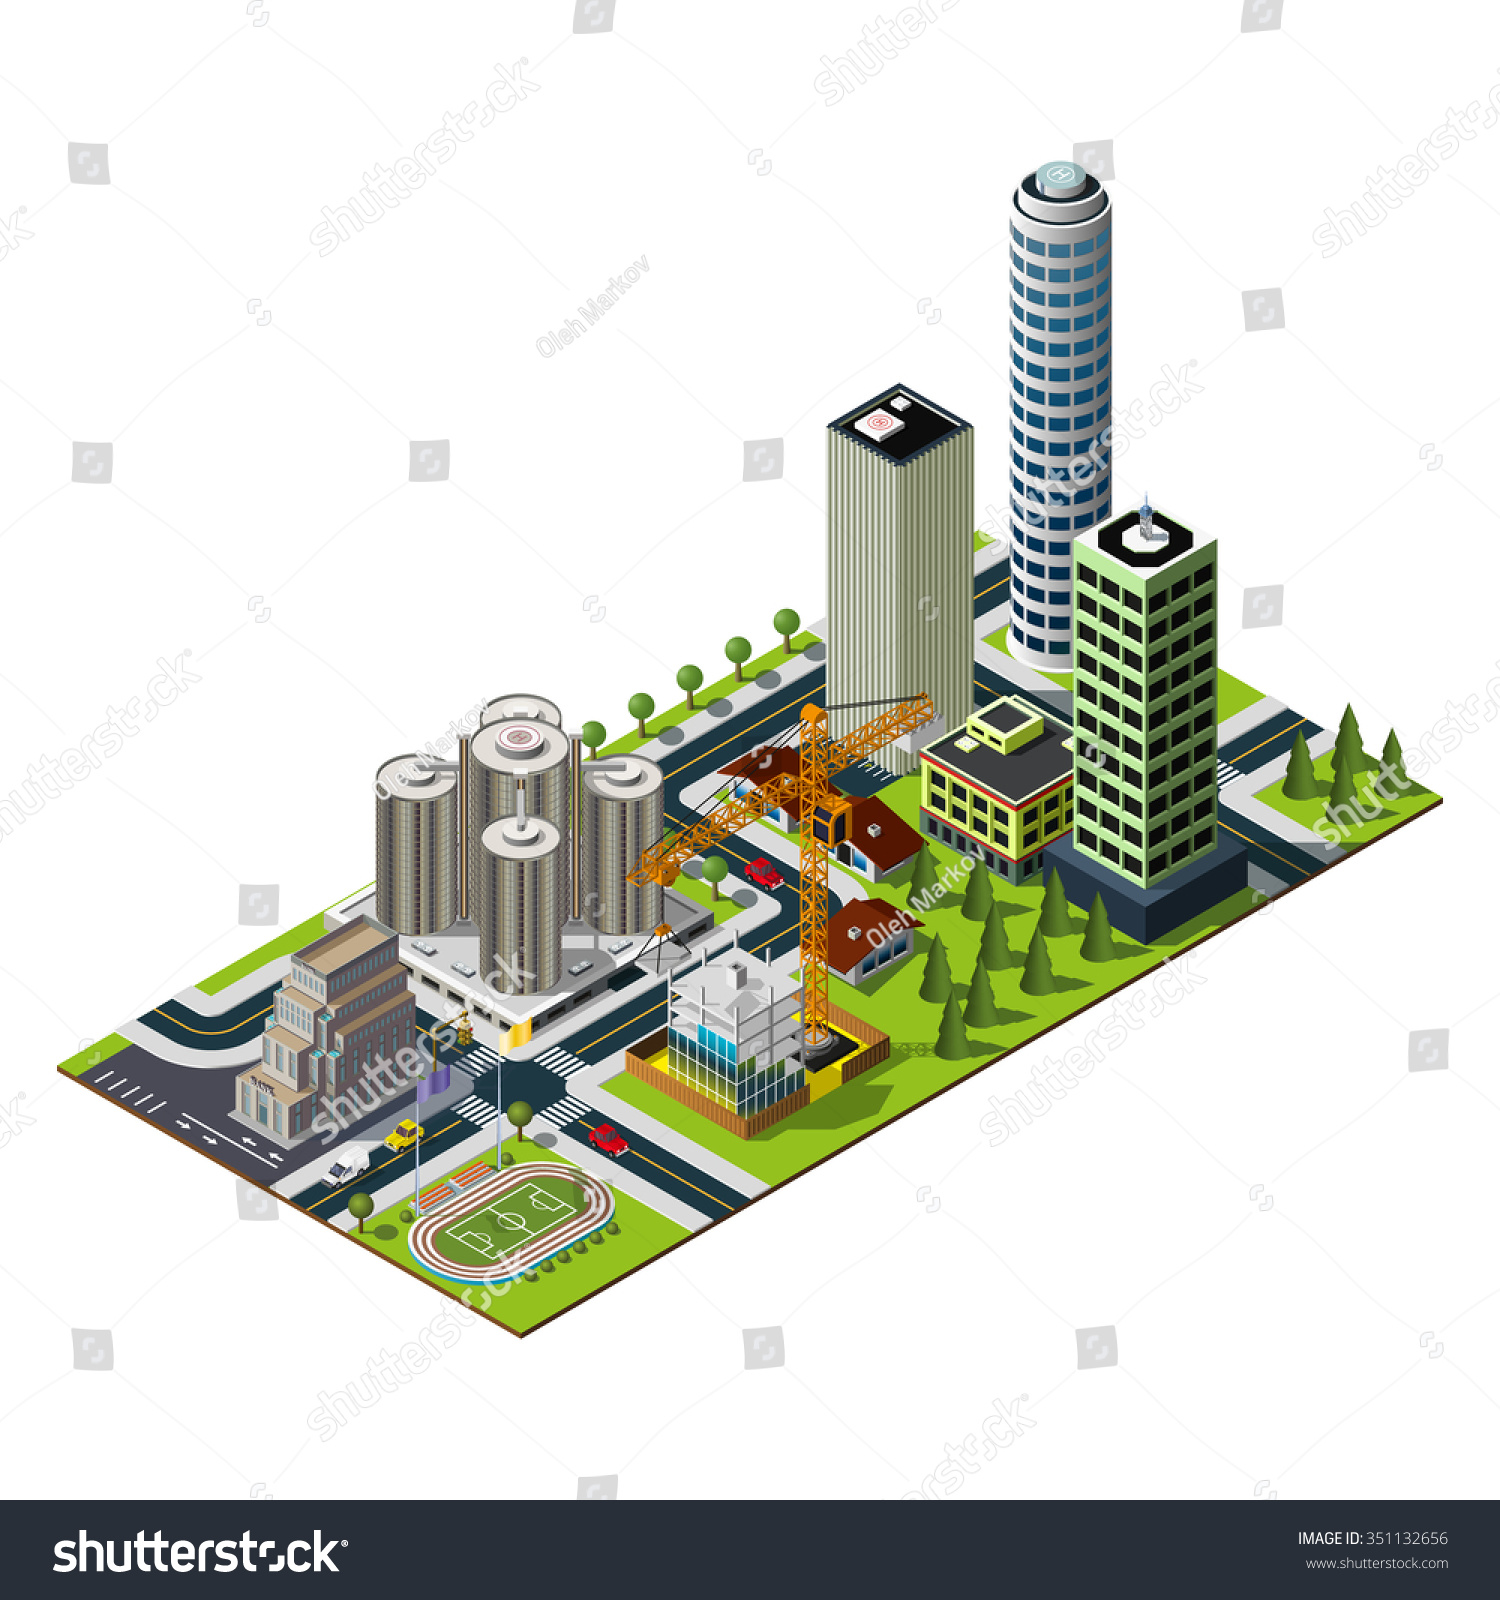 Hotel Bank Illustration Construction Central Stadium Stock Vector